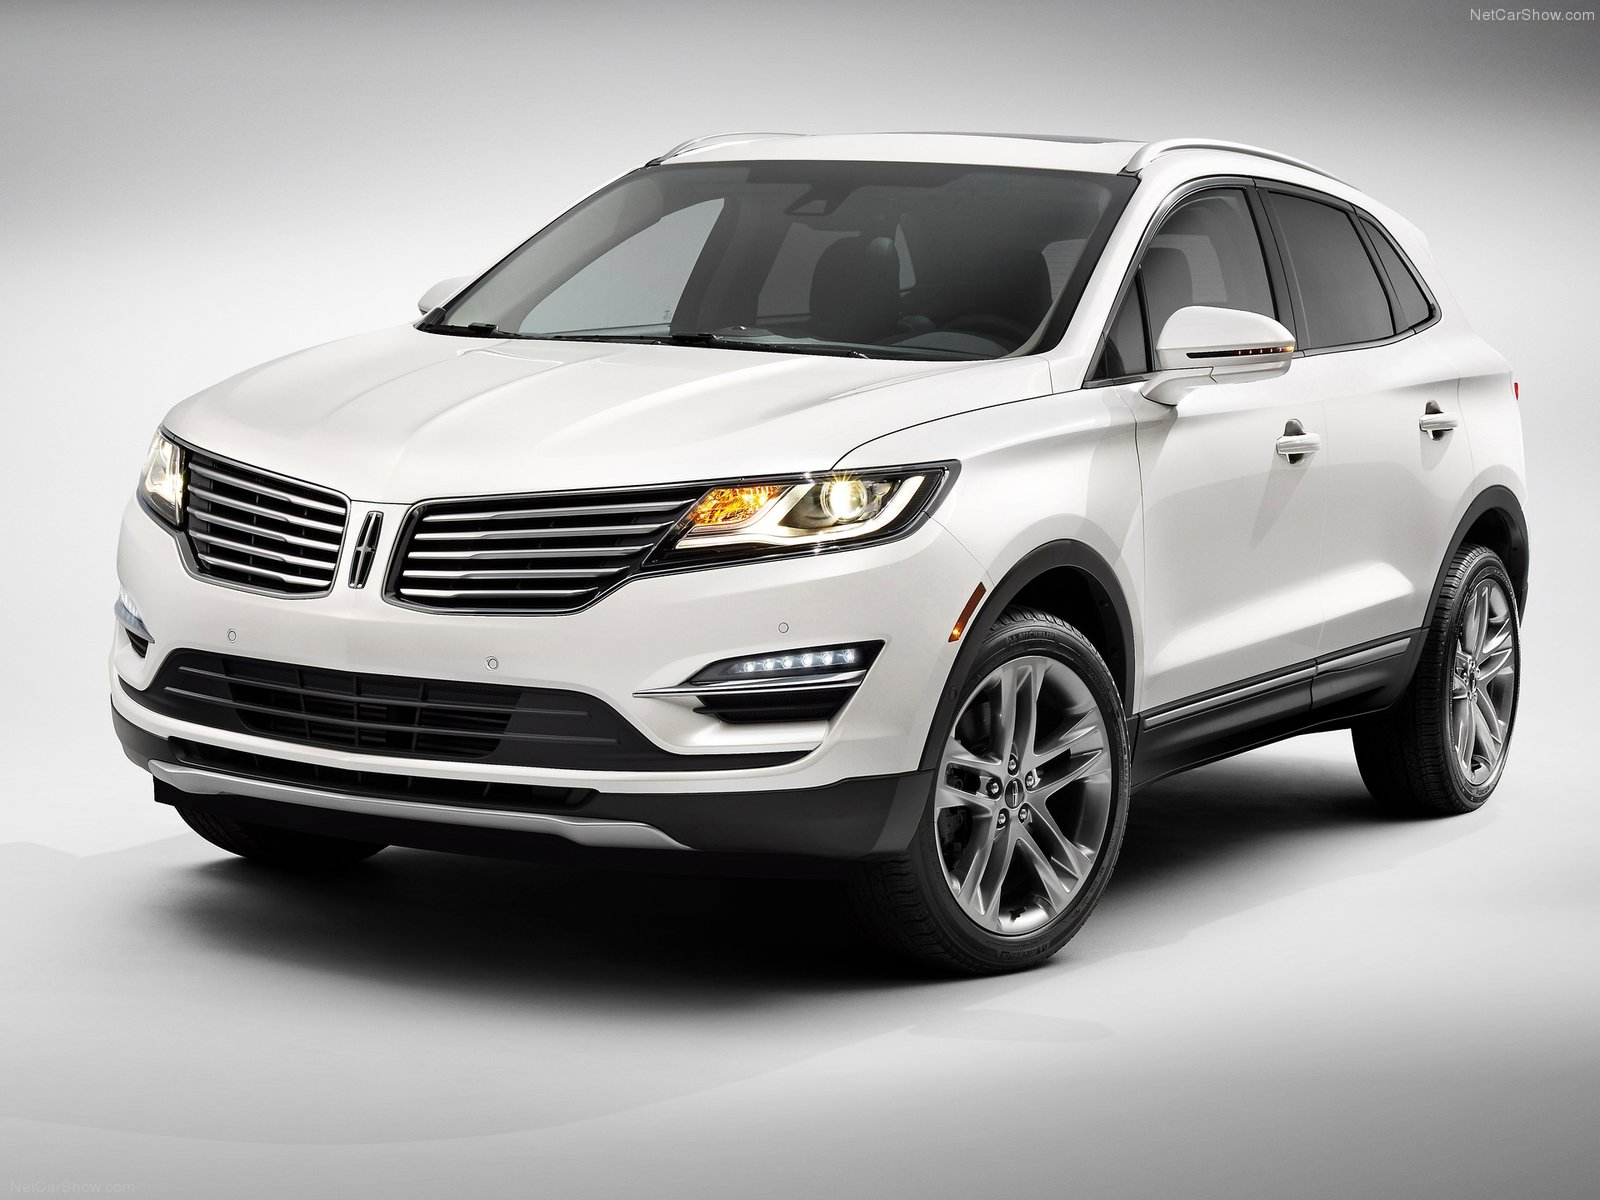 2015 Lincoln Mkx #14